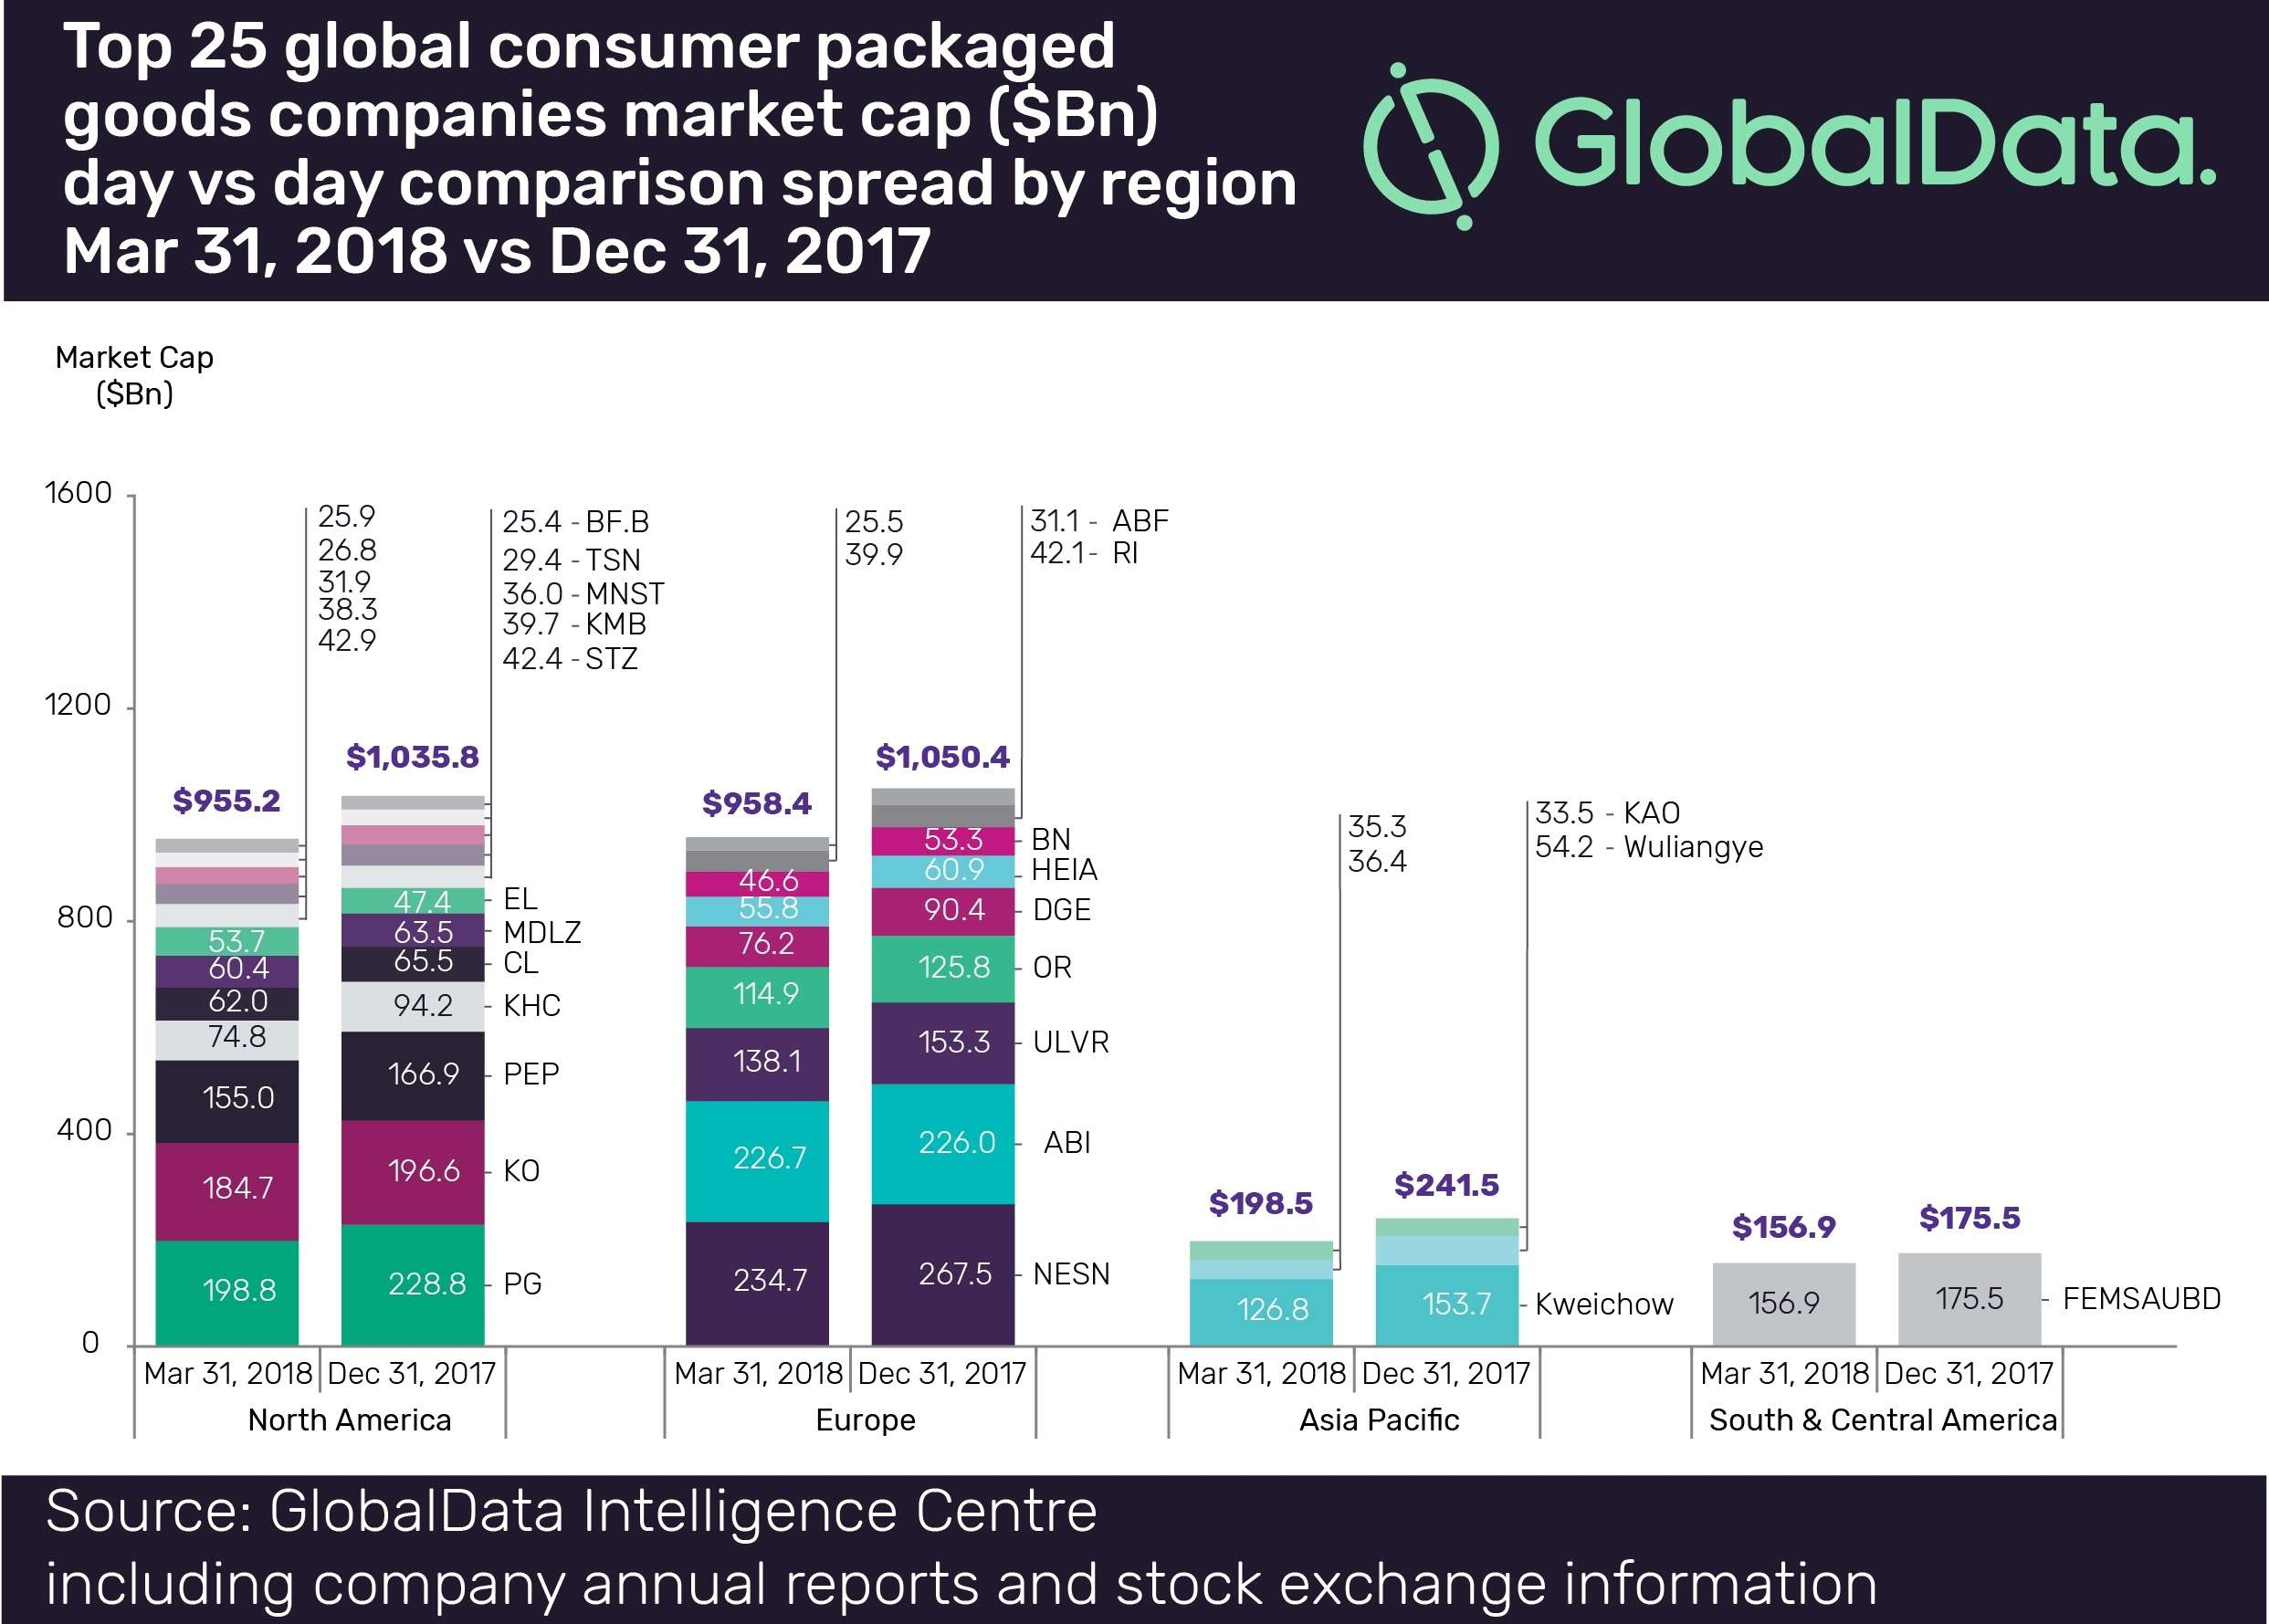 Top 25 global consumer packaged goods companies by market